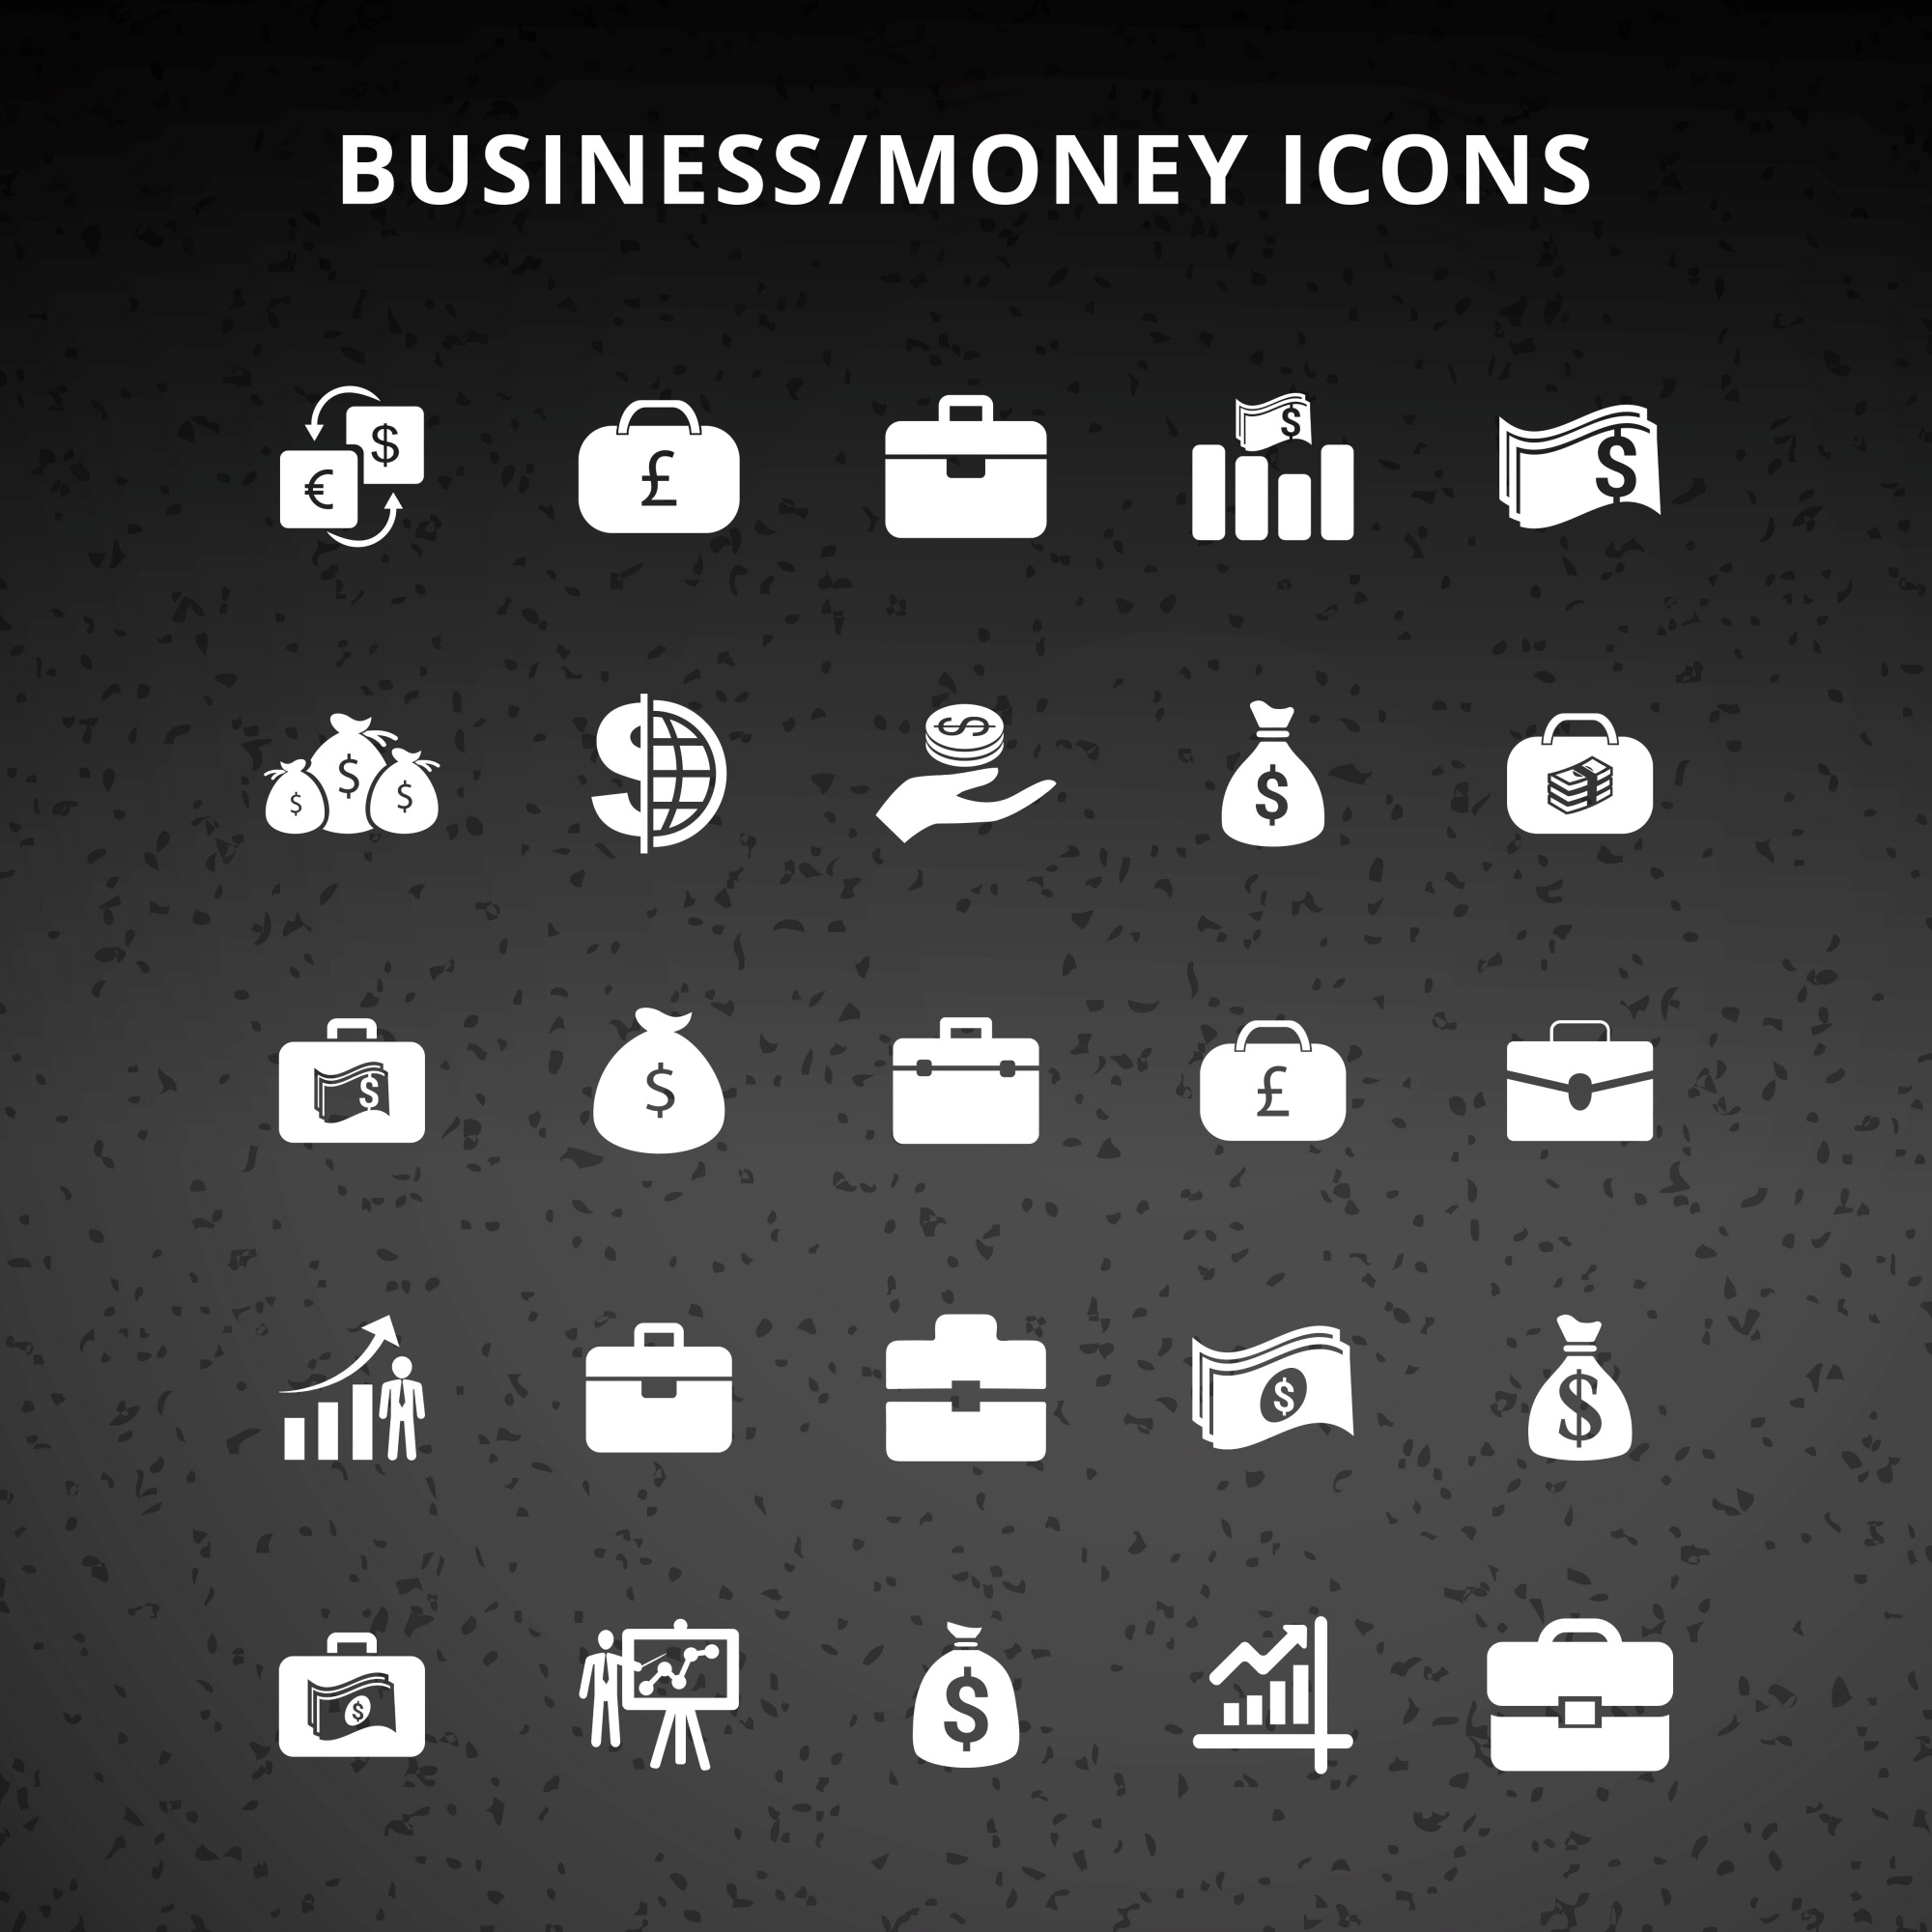 Business Geld Icons